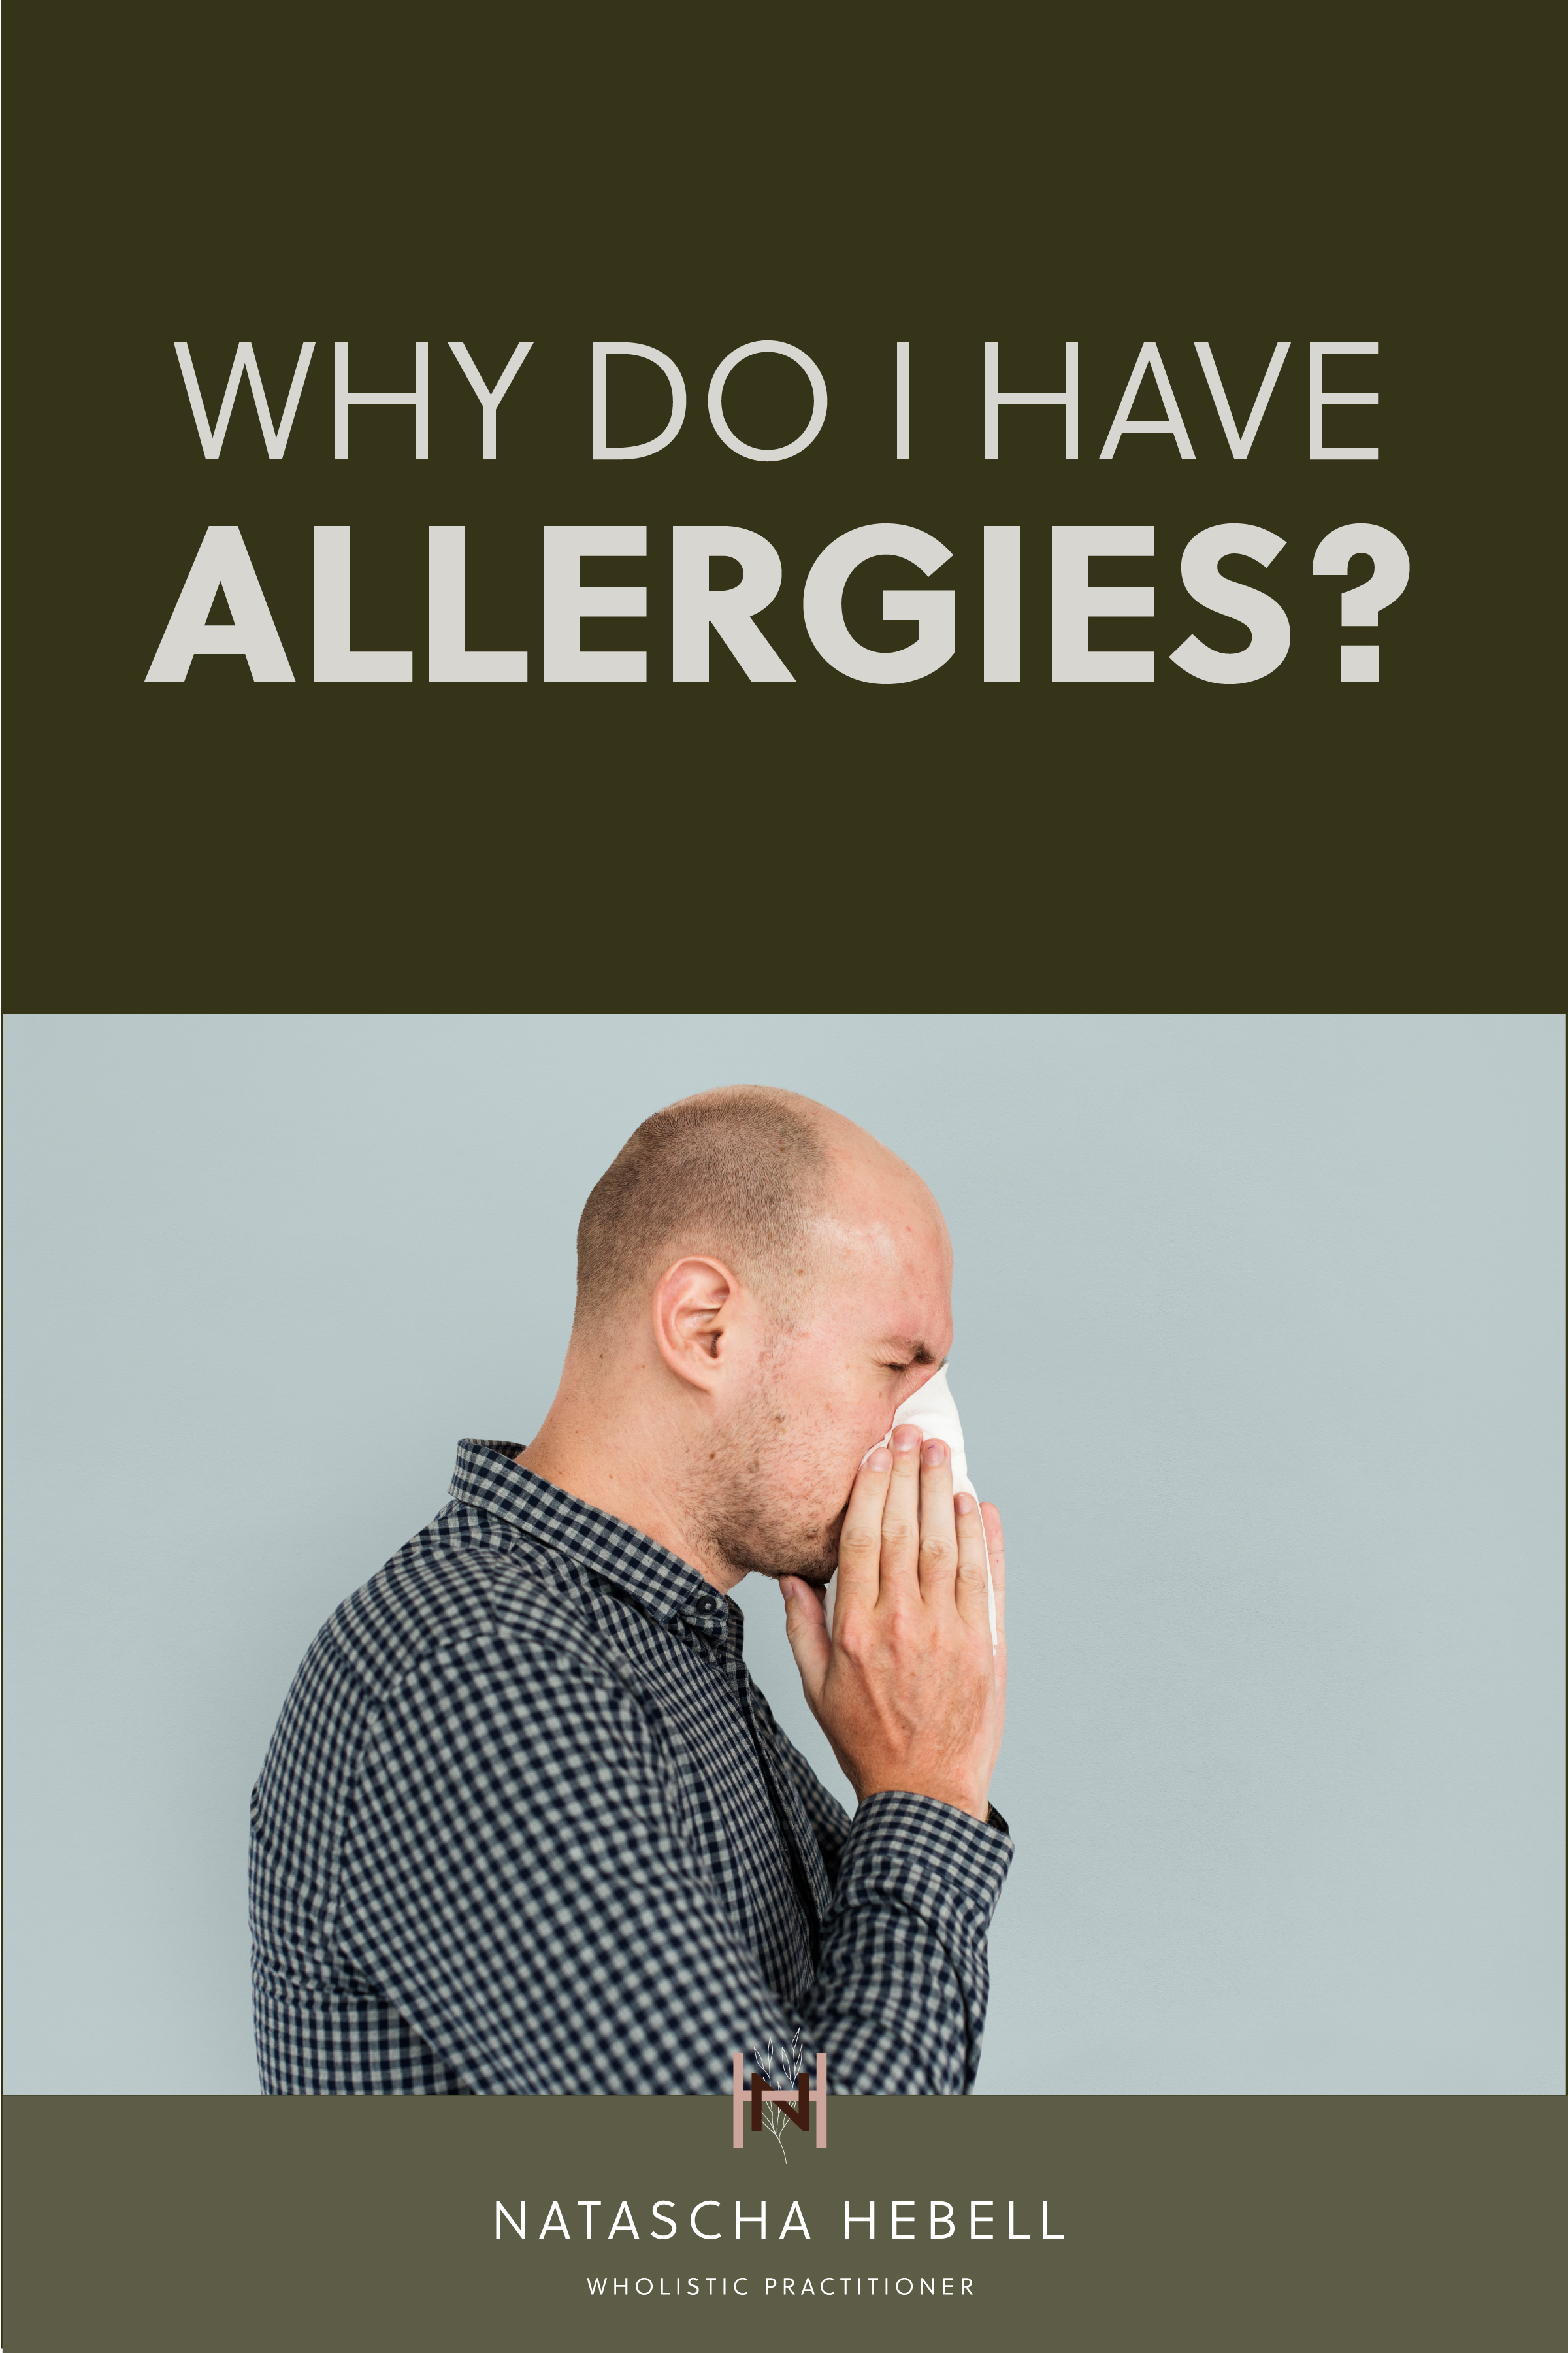 Why do I have allergies?  | Natascha Hebell, Wholistic Practitioner